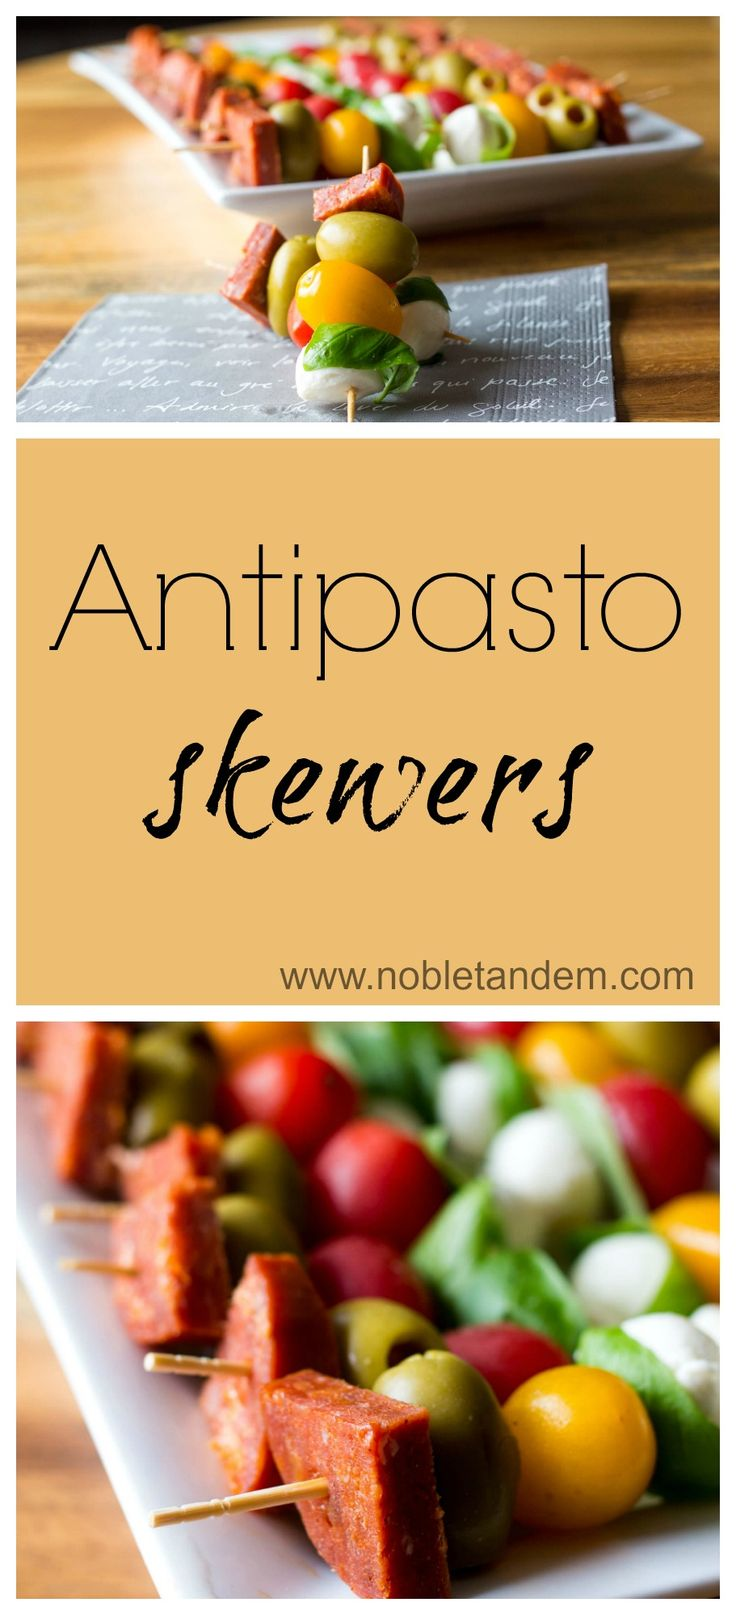 Easy and delicious antipasto skewers. This is a great appetizer to put together at the last minute or went you have a lot a people over and you don't want to spend all your time in the kitchen. You can even prepare them in advance. http://www.nobletandem.com/recipe/easy-delicious-antipasto-skewers/